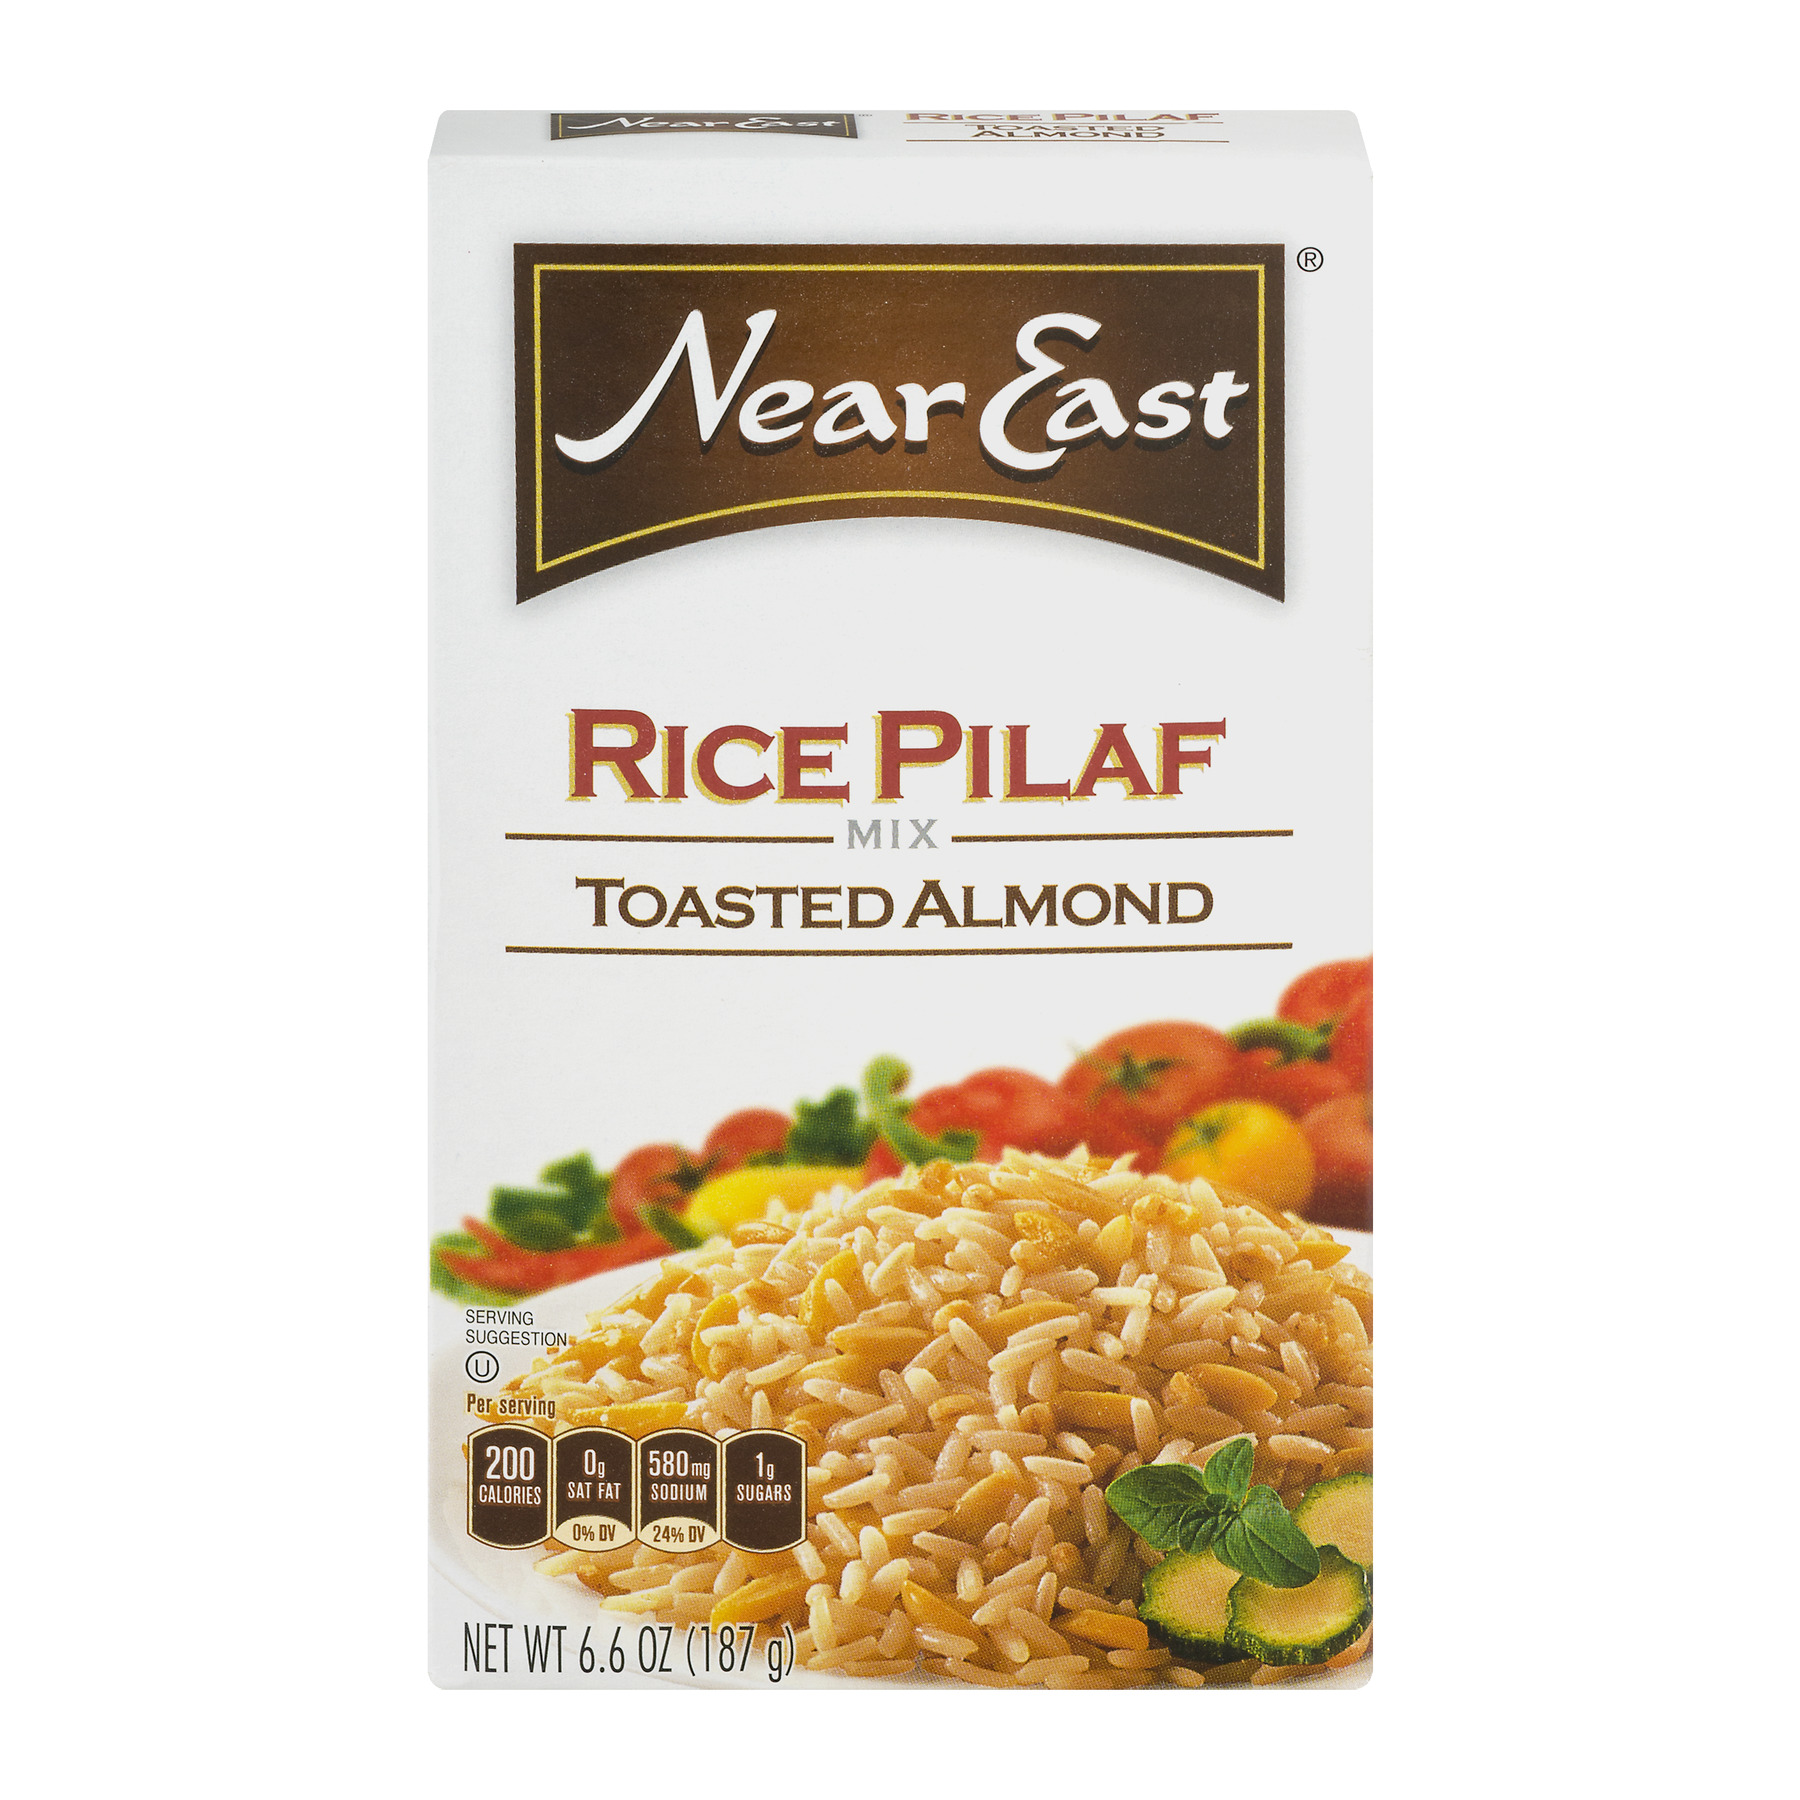 Near East Rice Pilaf Mix, Toasted Almond, 6.6 oz Box